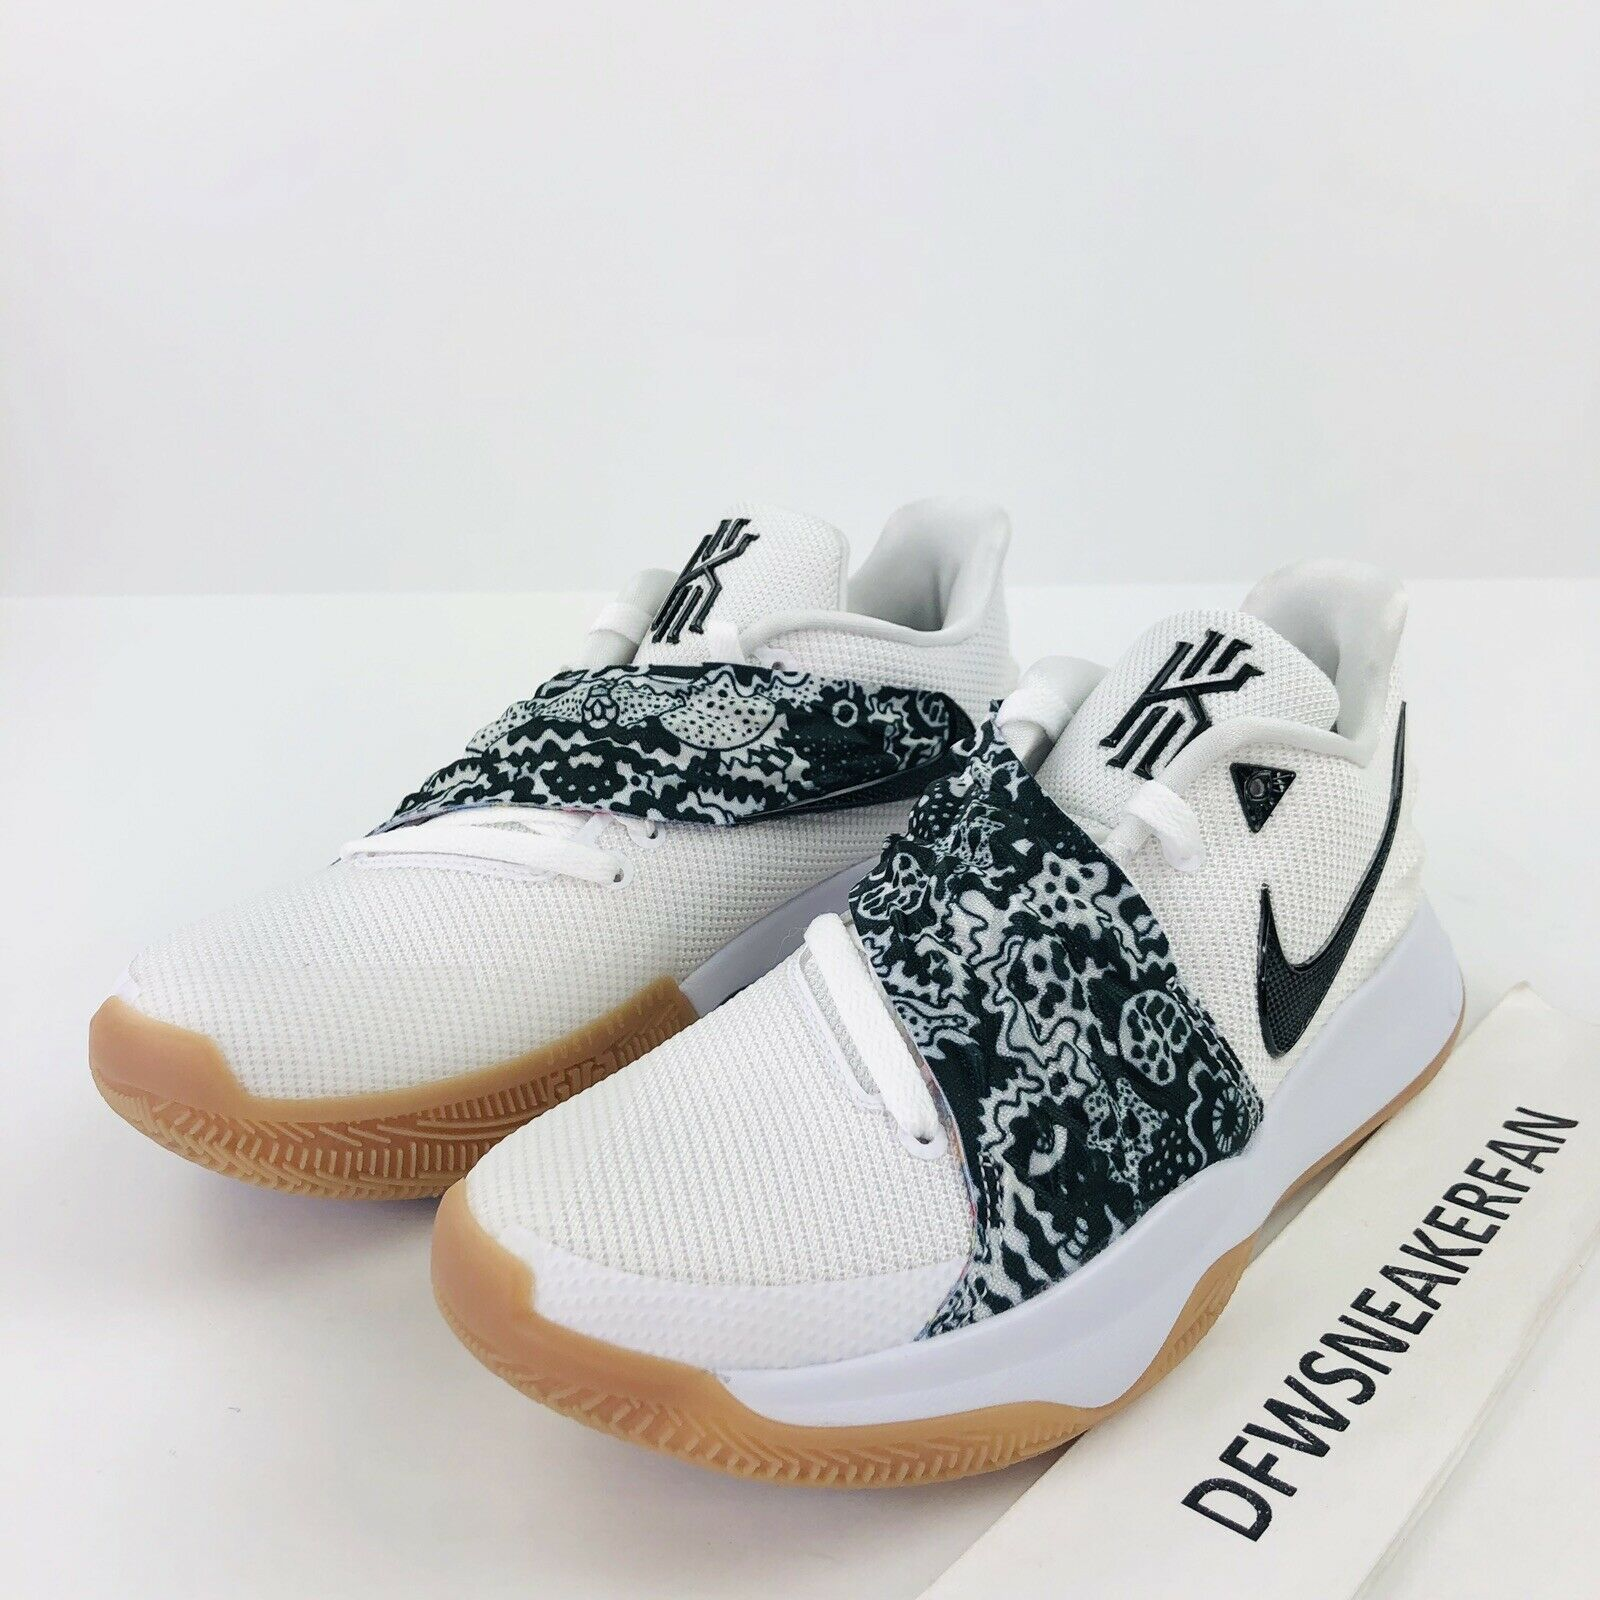 Nike Kyrie 4 Low Men's 12.5 White Black AO8979-100 Basketball shoes Irving New